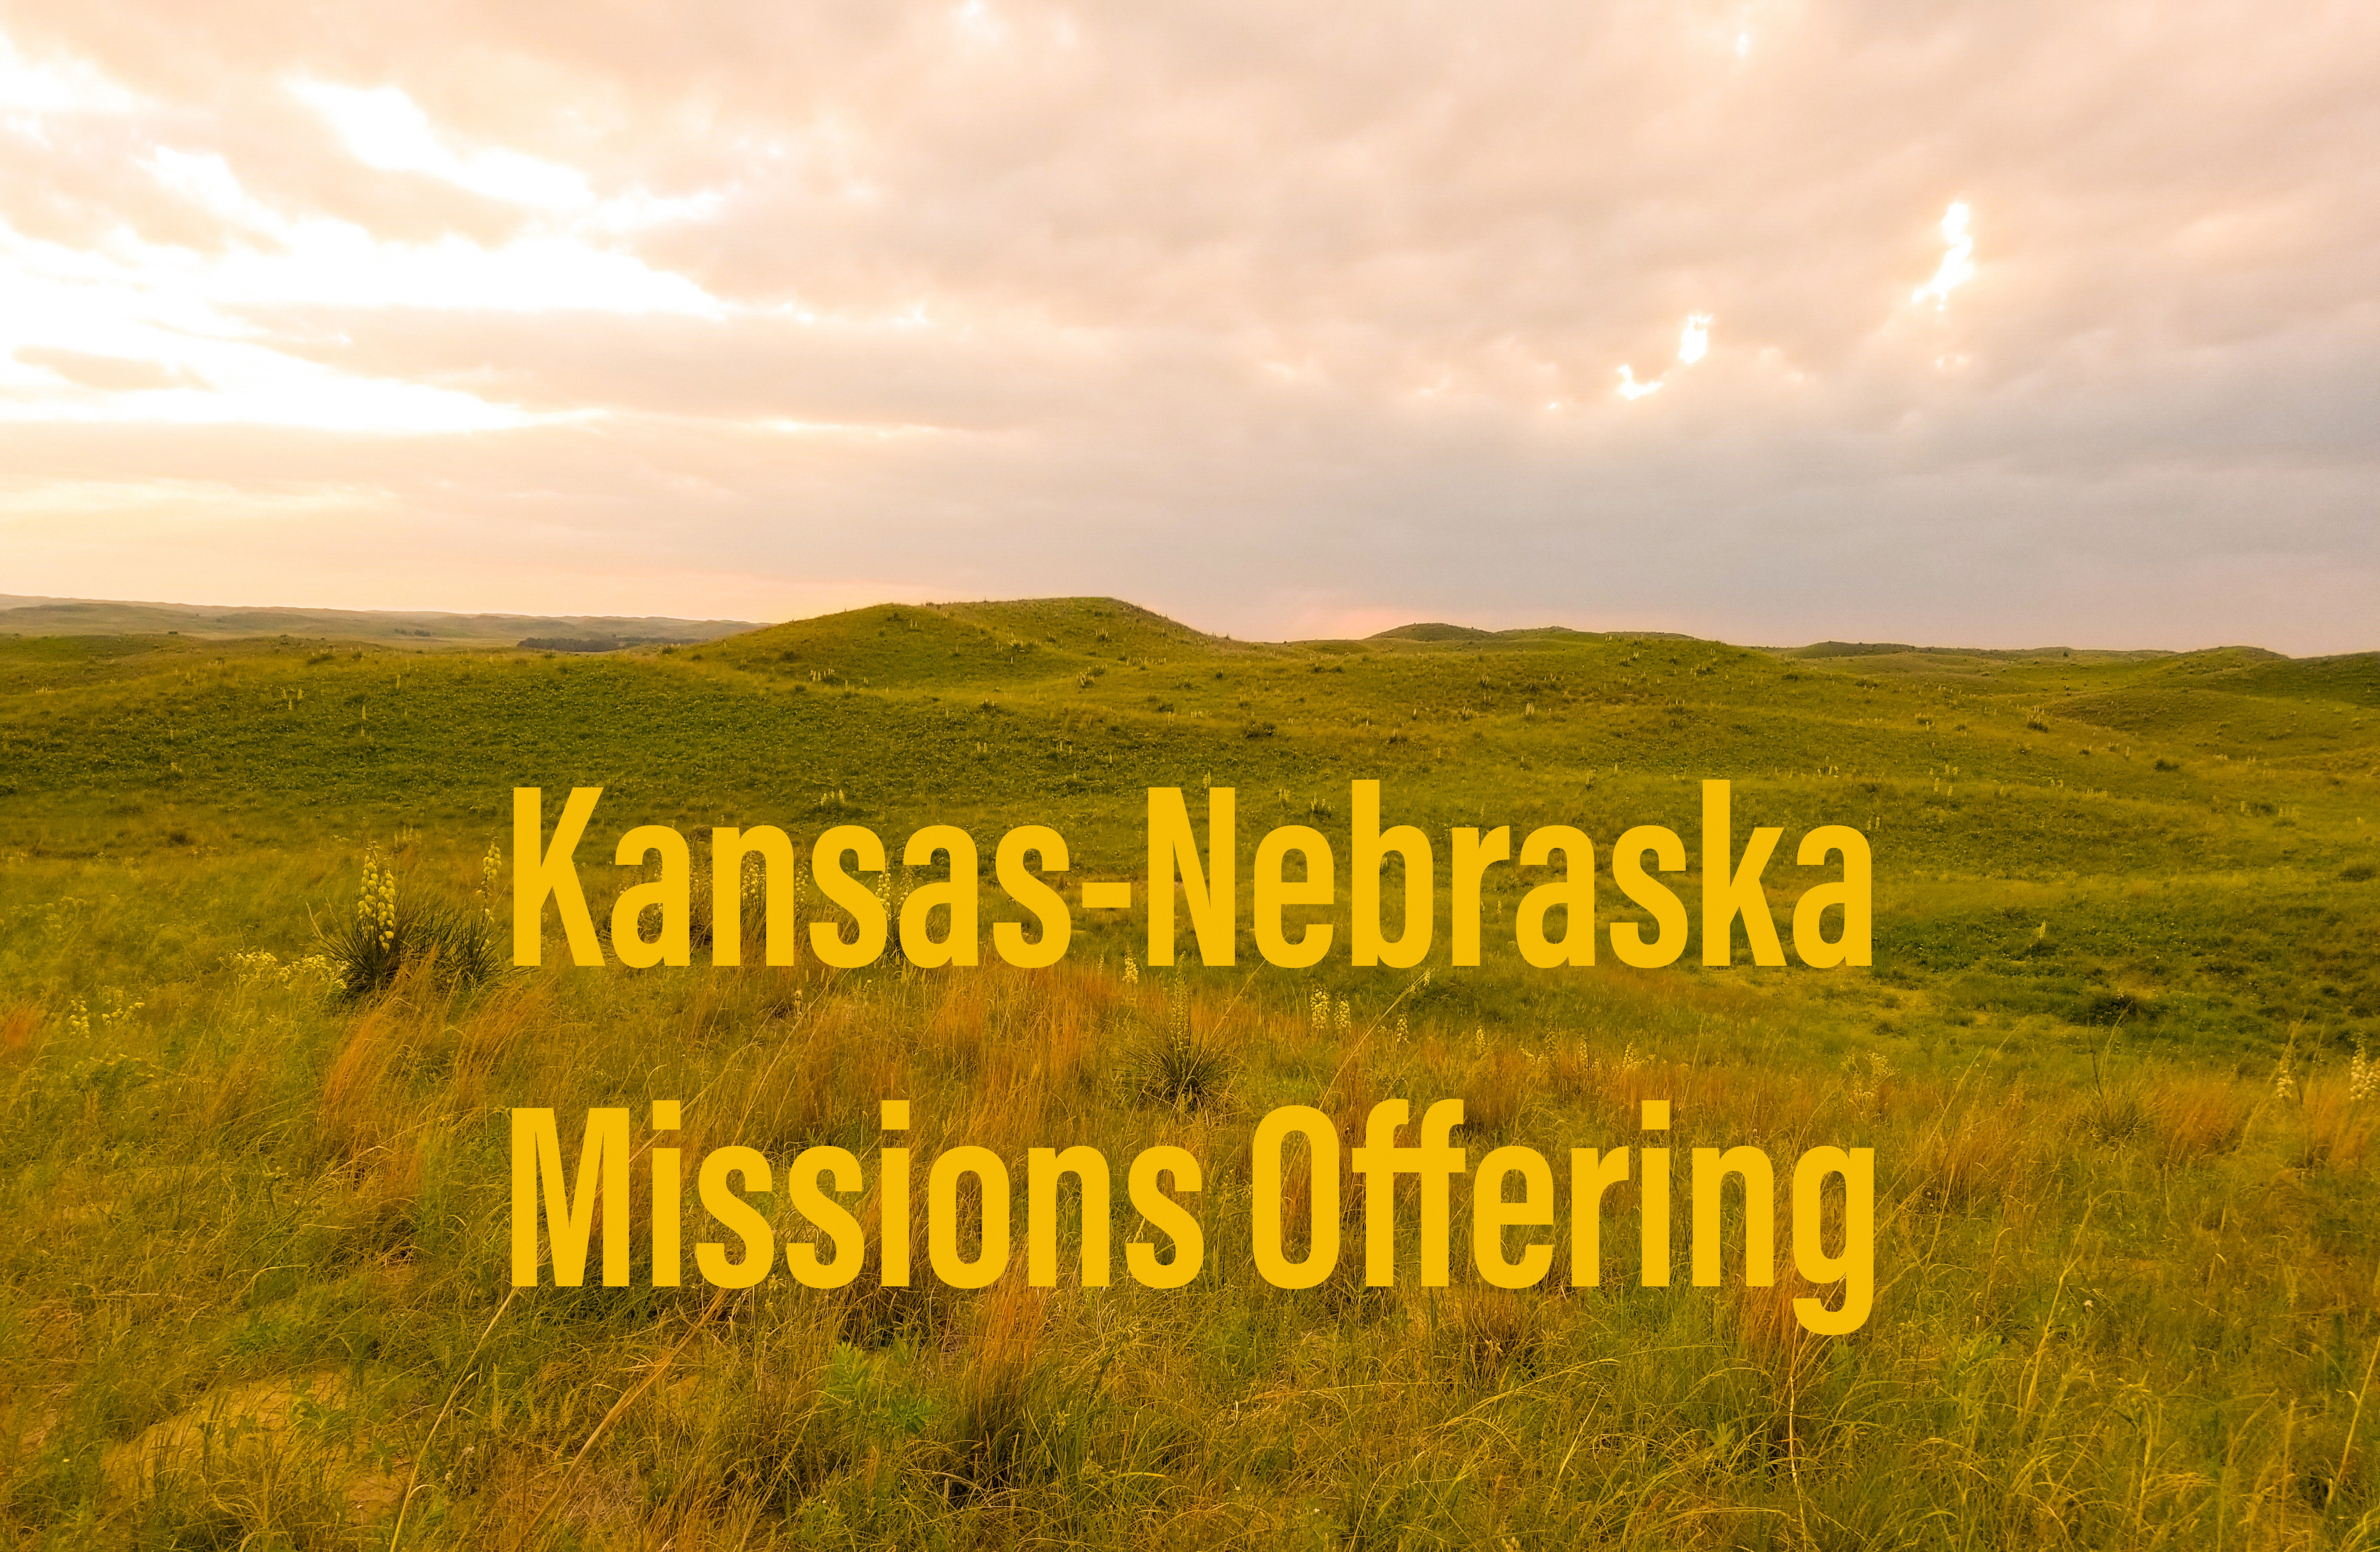 Annual missions offering benefits KNCSB and associations